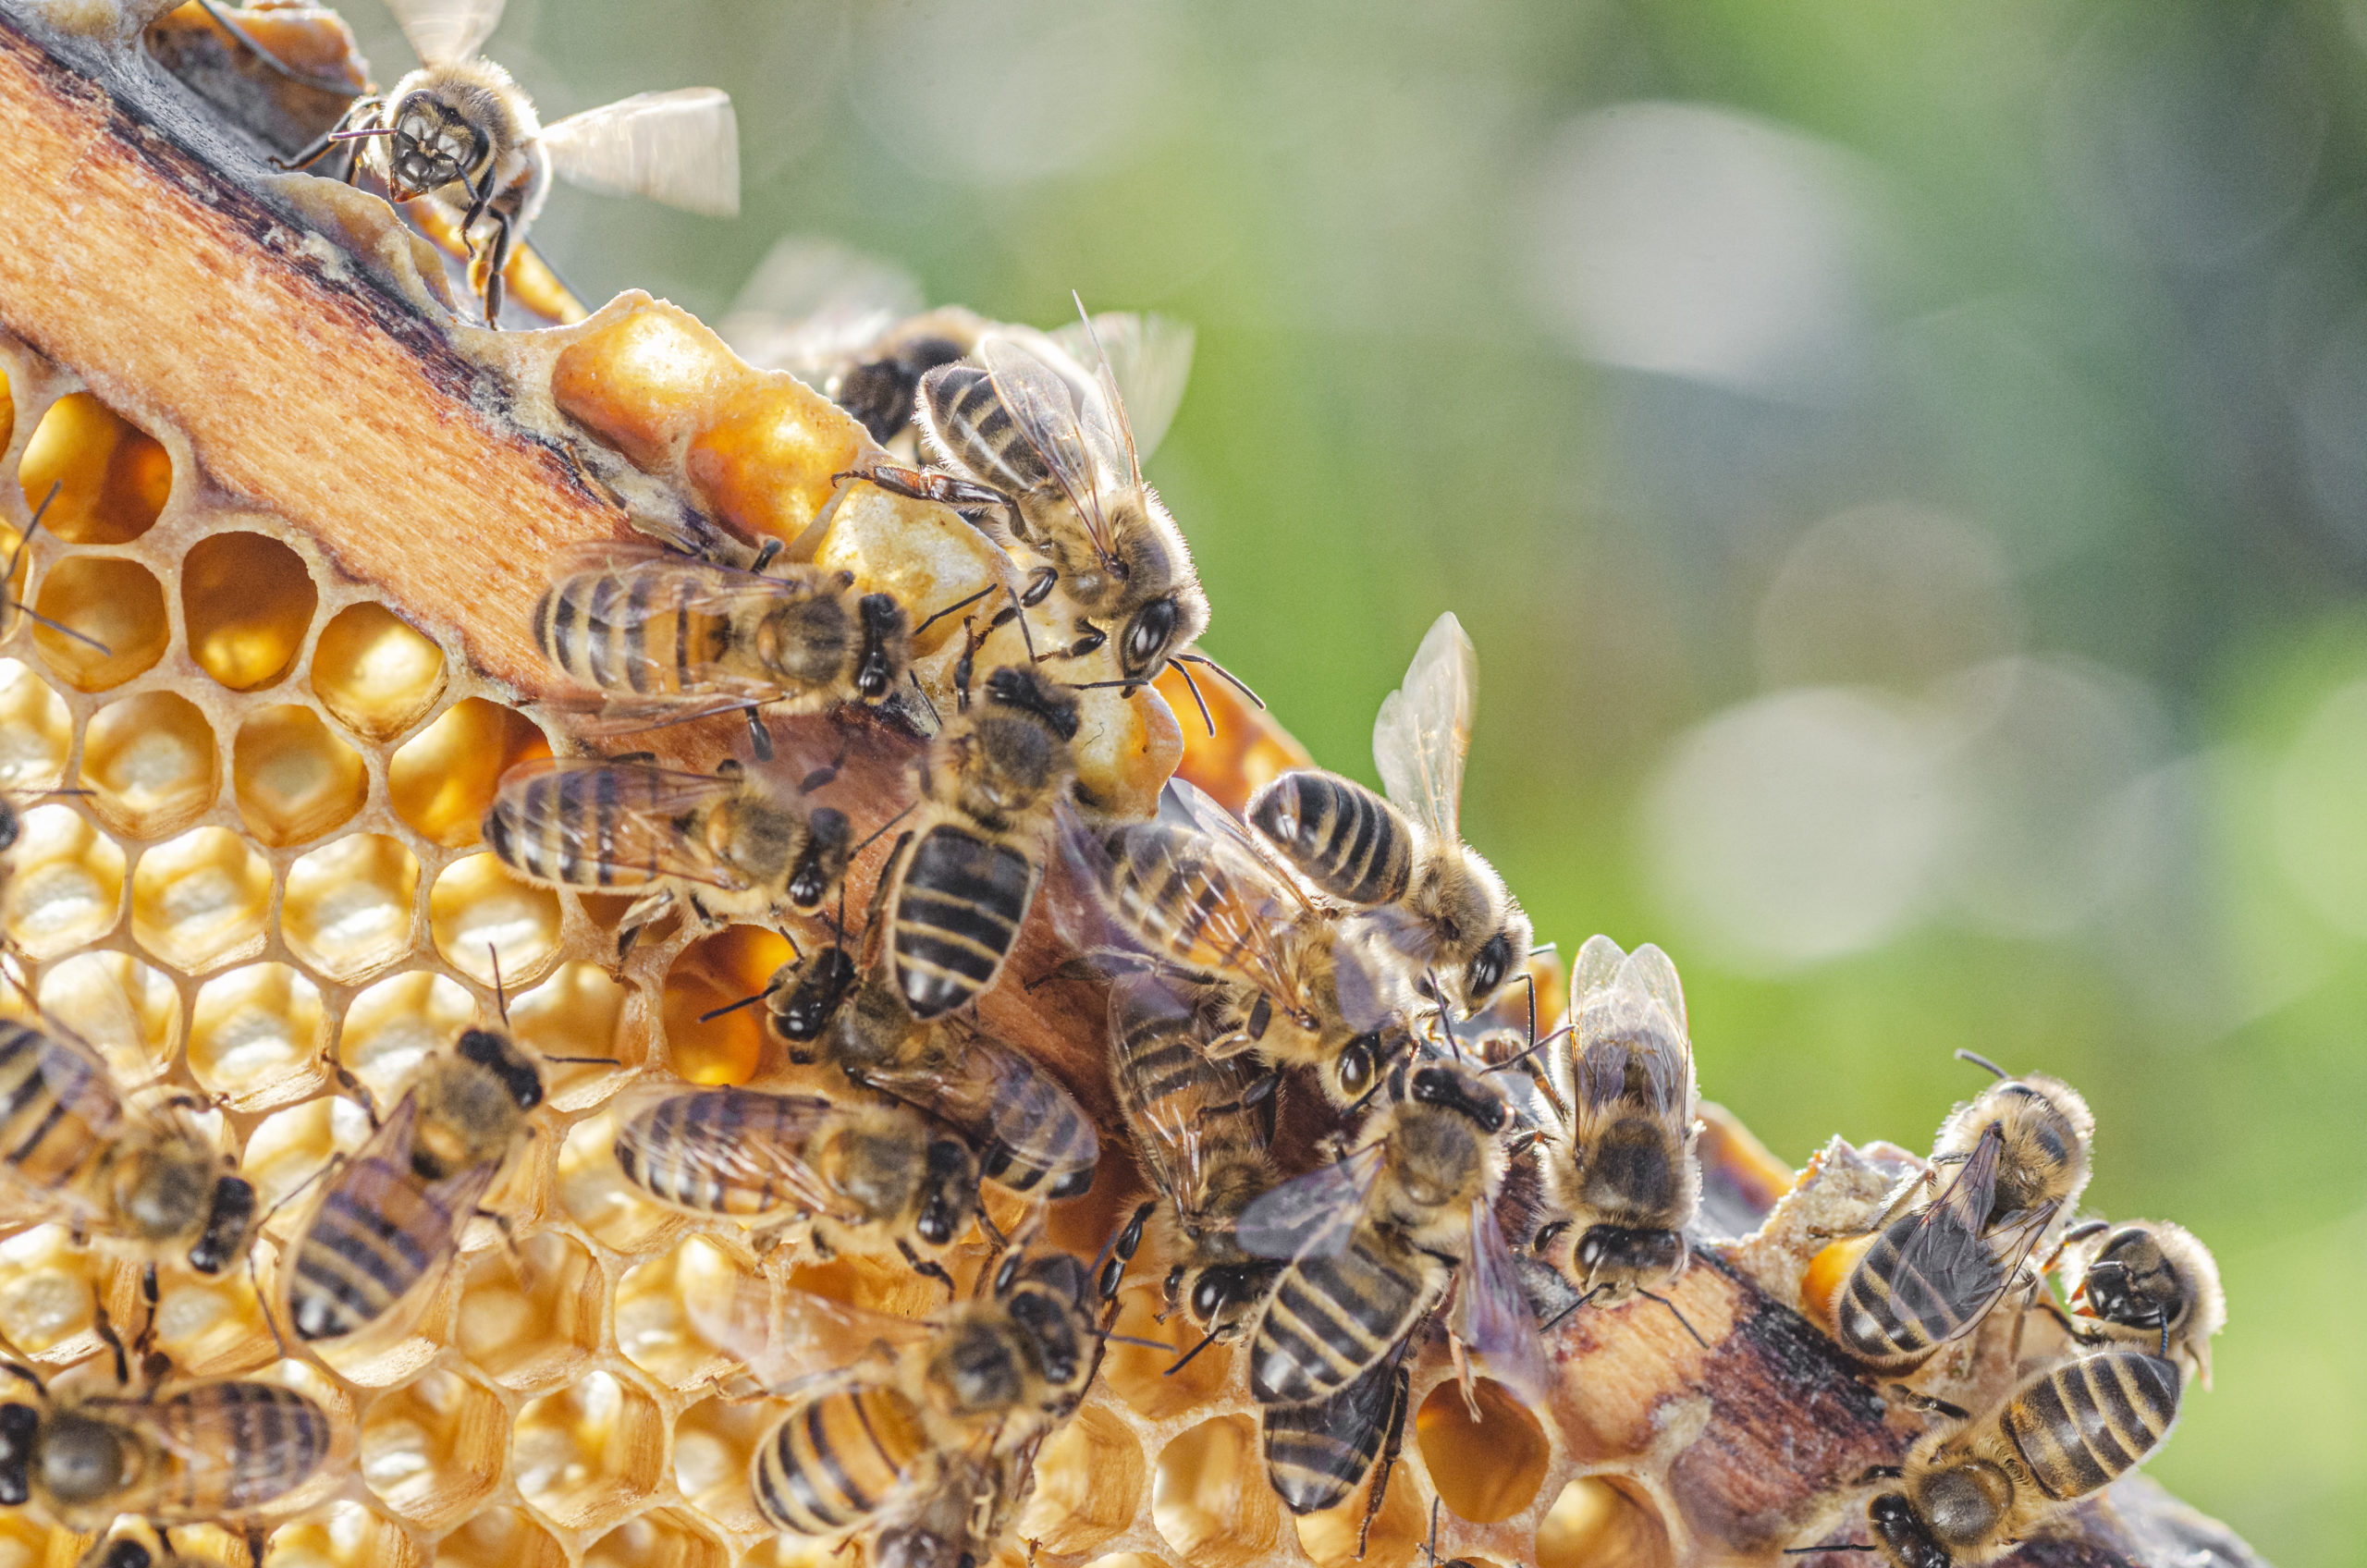 Honey Bees Stinging Insects Control